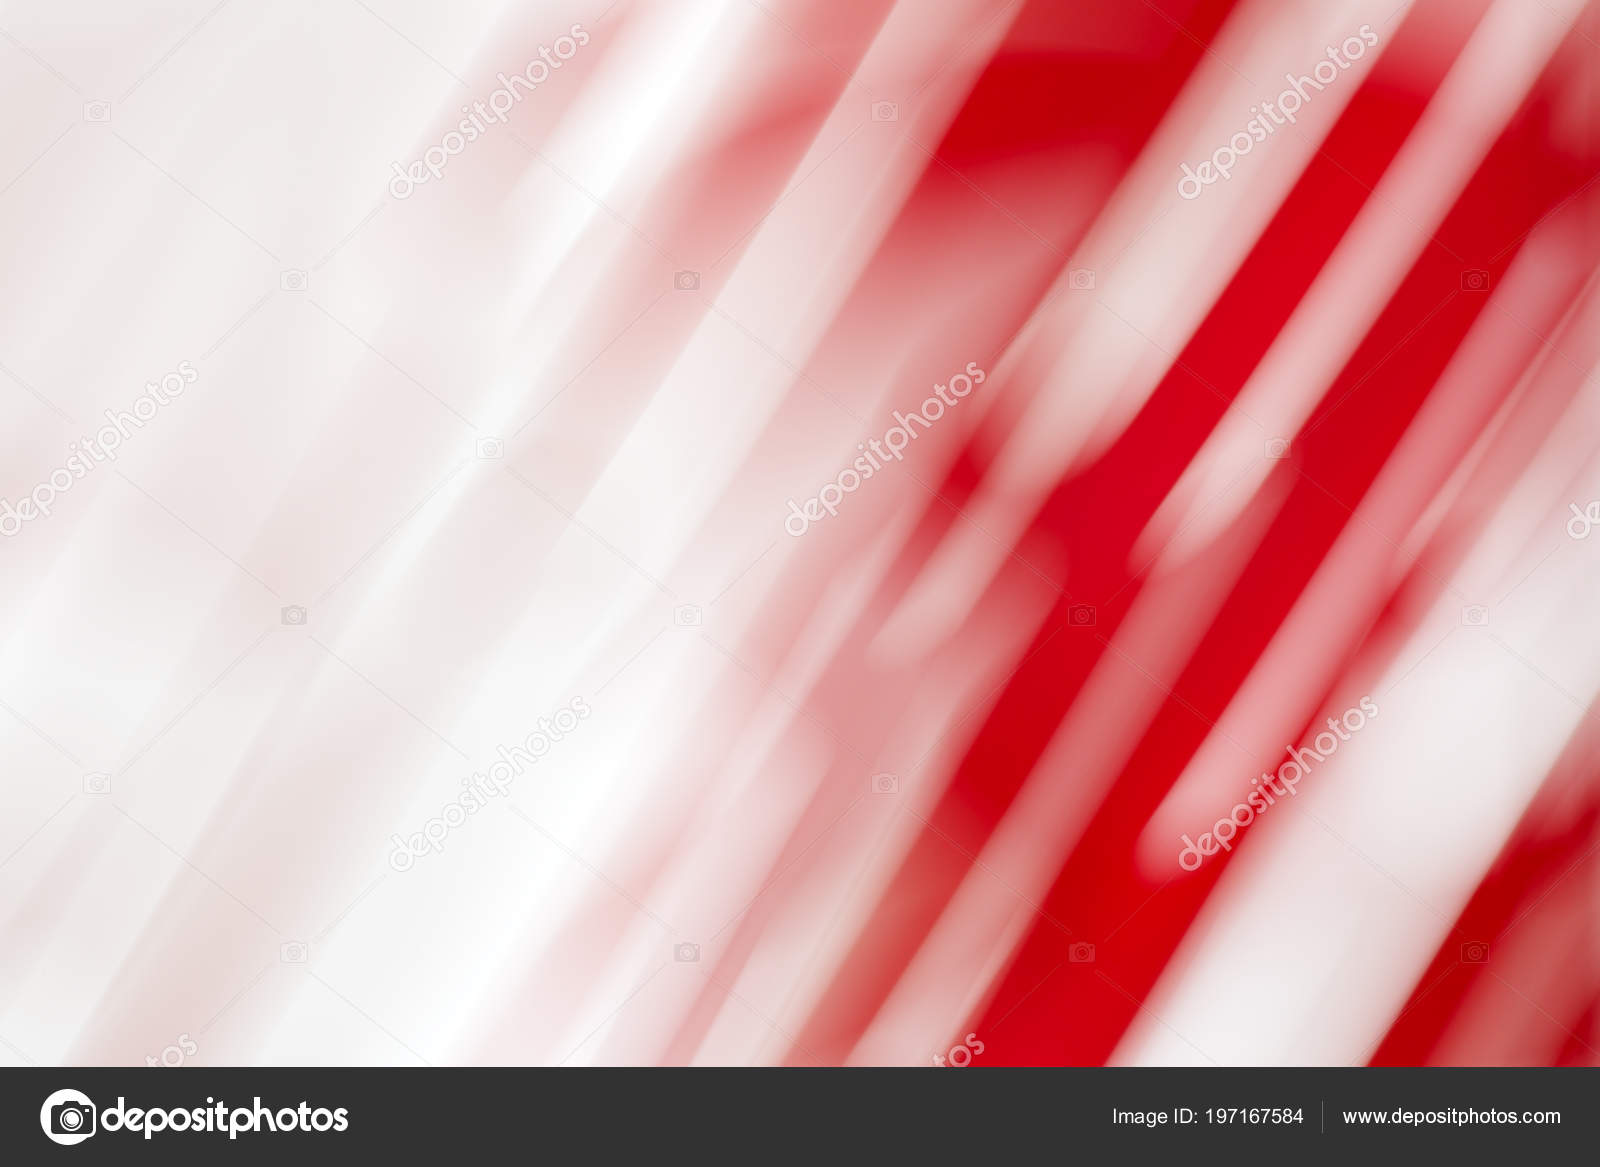 motion blurred abstract red and white background or red and white background 2949965 hd wallpaper backgrounds download motion blurred abstract red and white background or red and white background 2949965 hd wallpaper backgrounds download